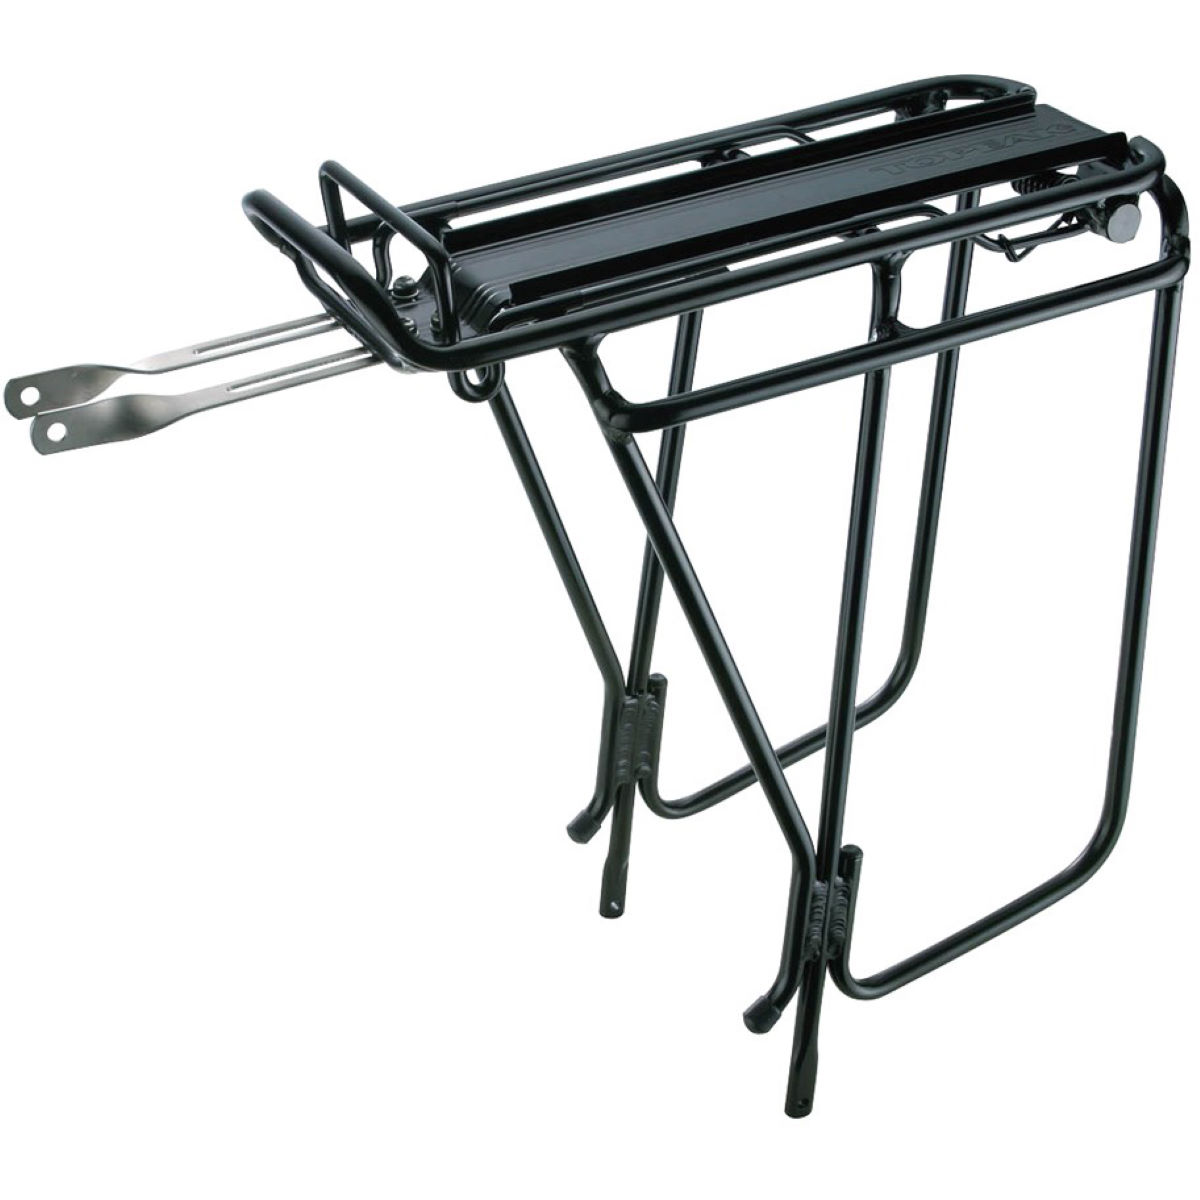 Topeak Super Tourist DX Sprung Rear Rack